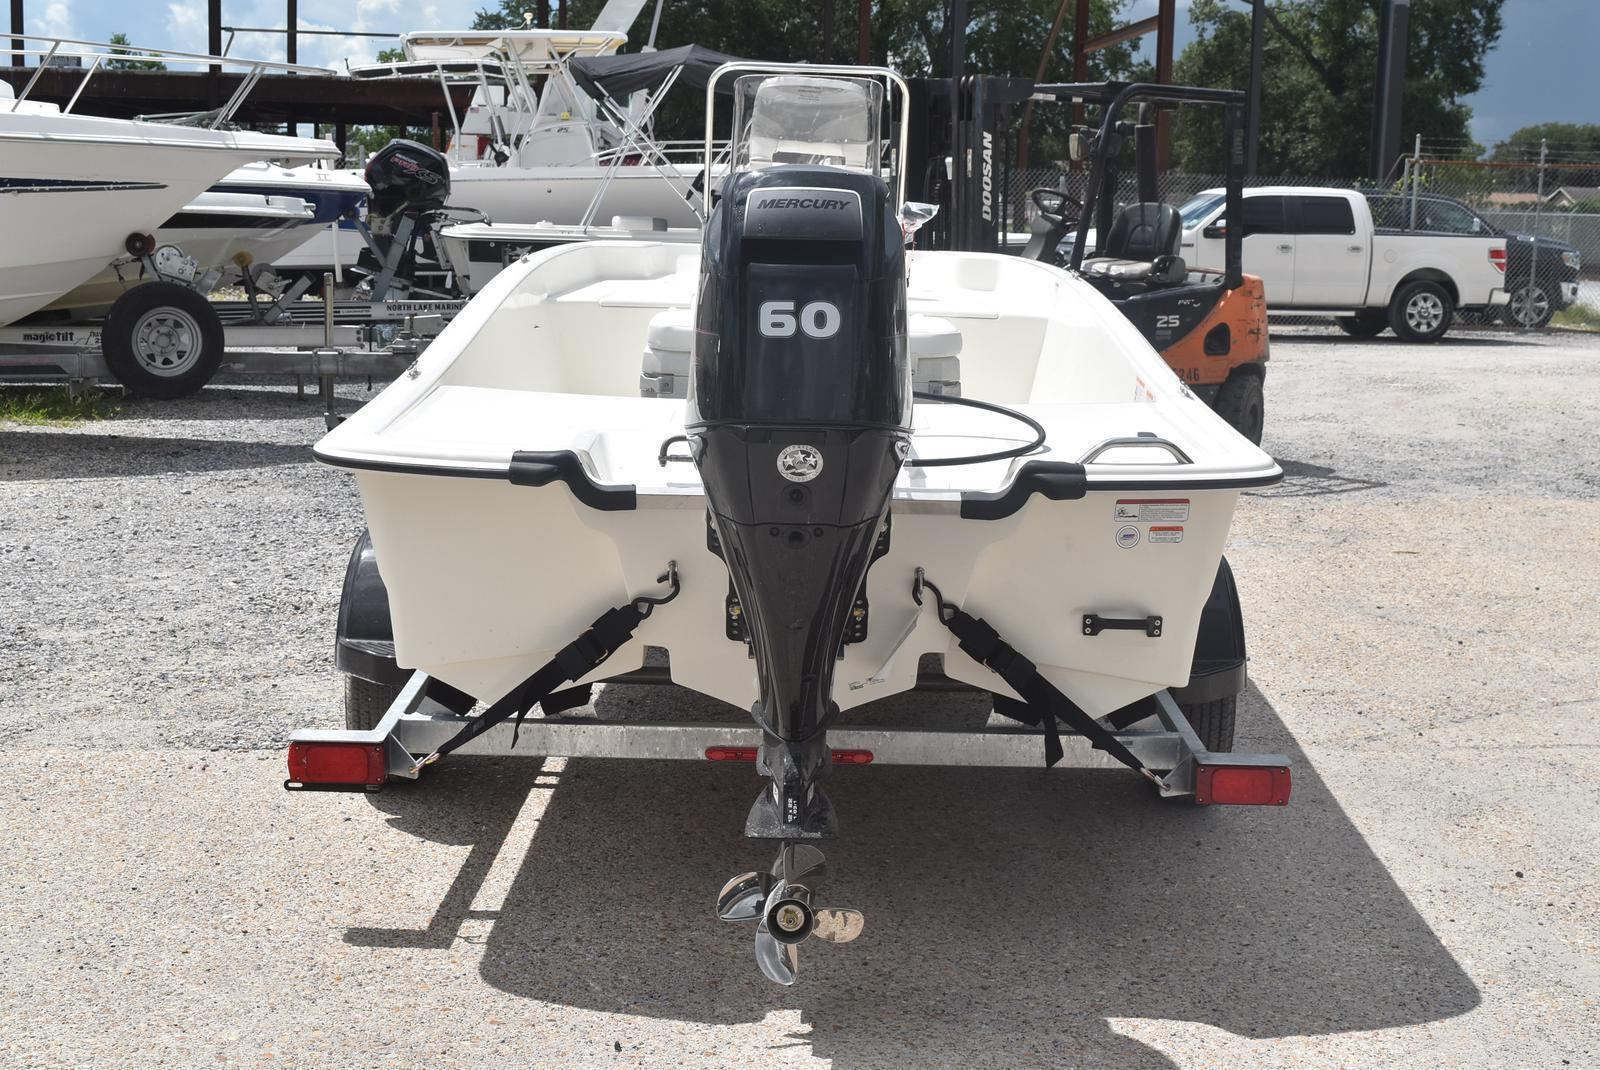 2020 Mako boat for sale, model of the boat is Pro Skiff 17, 75 ELPT & Image # 577 of 702